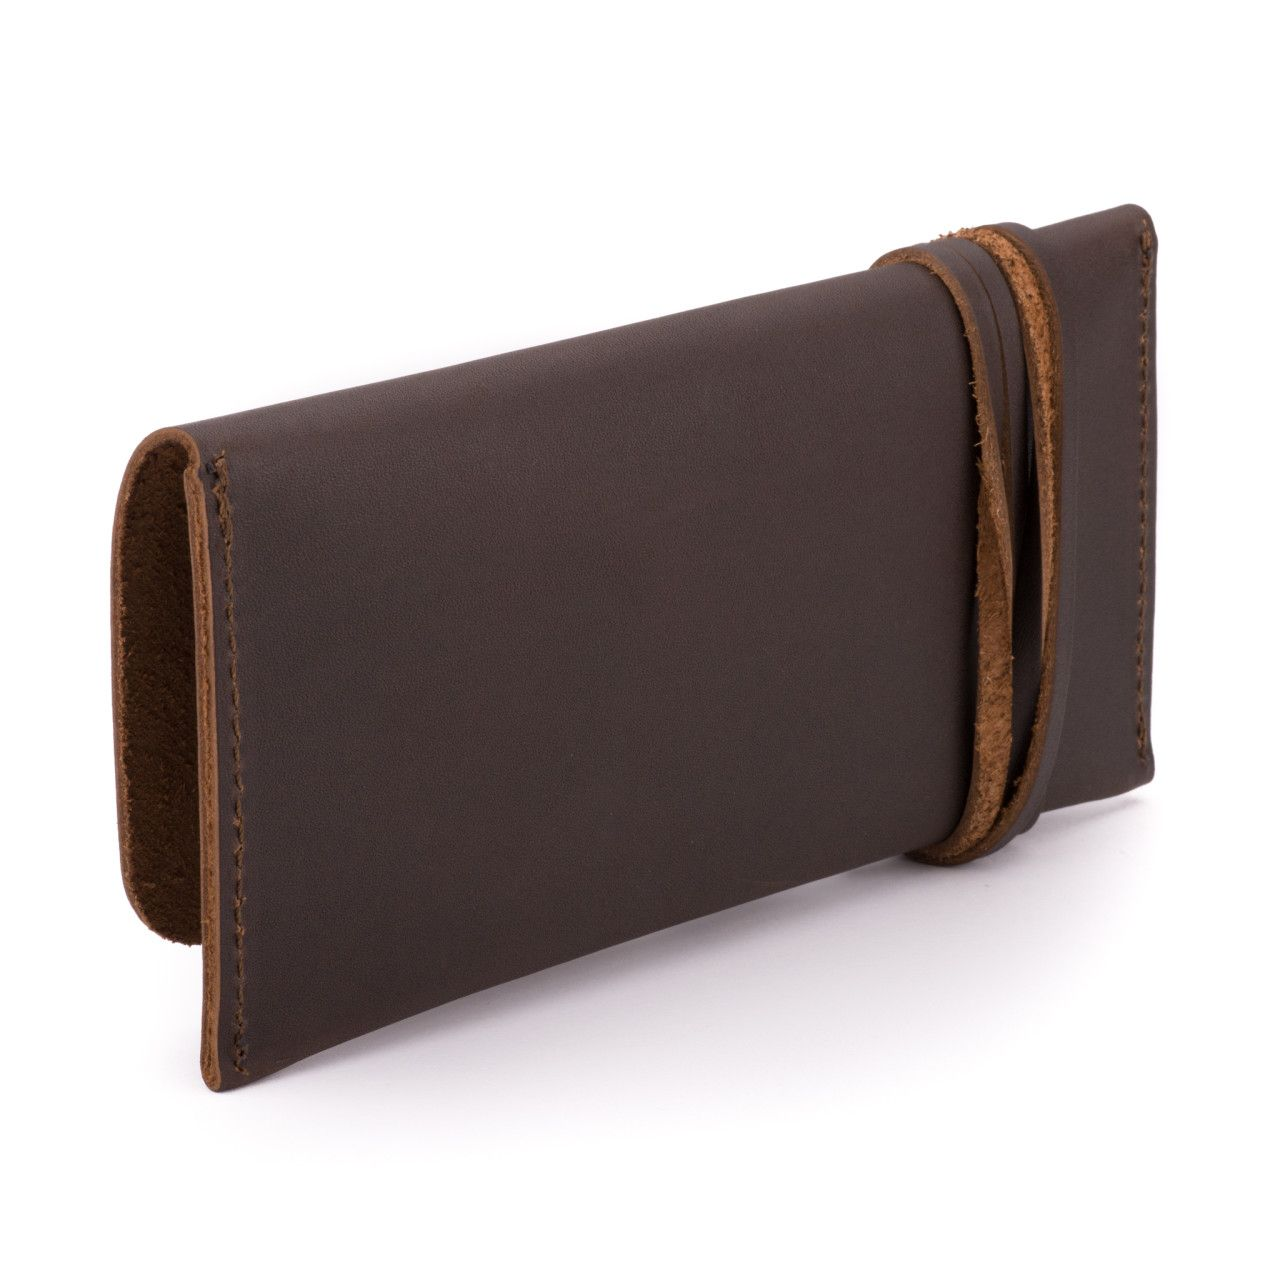 leather sunglass case in dark coffee brown leather